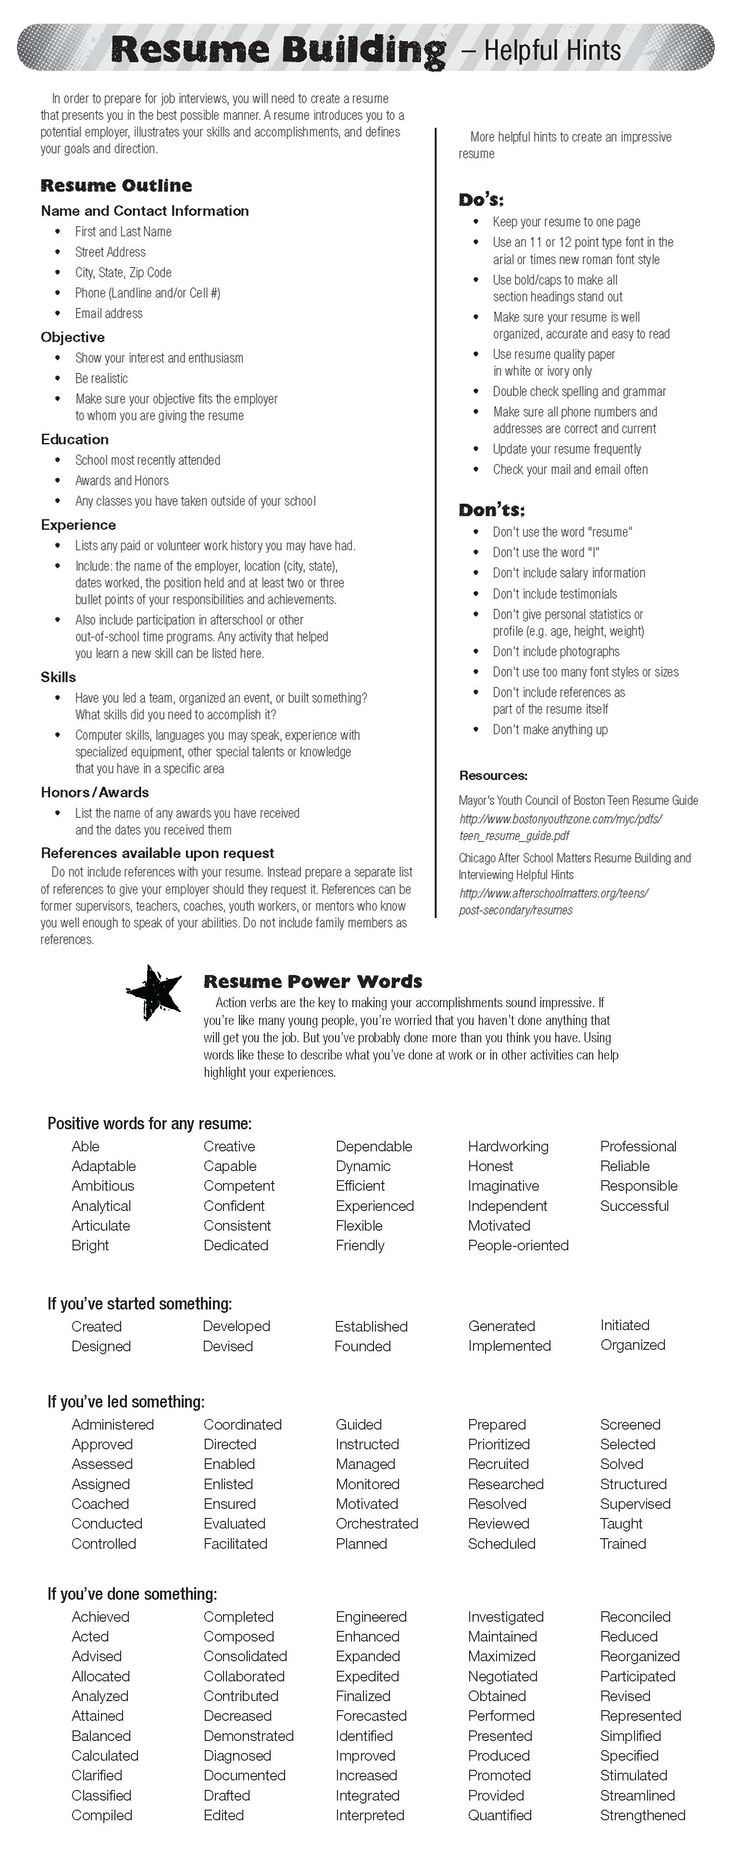 Opposenewapstandardsus  Unusual  Ideas About Resume On Pinterest  Cv Format Resume Cv And  With Interesting  Ideas About Resume On Pinterest  Cv Format Resume Cv And Resume Templates With Charming Current College Student Resume Examples Also Firefighter Job Description For Resume In Addition Biotechnology Resume And Grad School Resume Sample As Well As Top  Resume Writing Services Additionally Bank Teller Job Description Resume From Pinterestcom With Opposenewapstandardsus  Interesting  Ideas About Resume On Pinterest  Cv Format Resume Cv And  With Charming  Ideas About Resume On Pinterest  Cv Format Resume Cv And Resume Templates And Unusual Current College Student Resume Examples Also Firefighter Job Description For Resume In Addition Biotechnology Resume From Pinterestcom